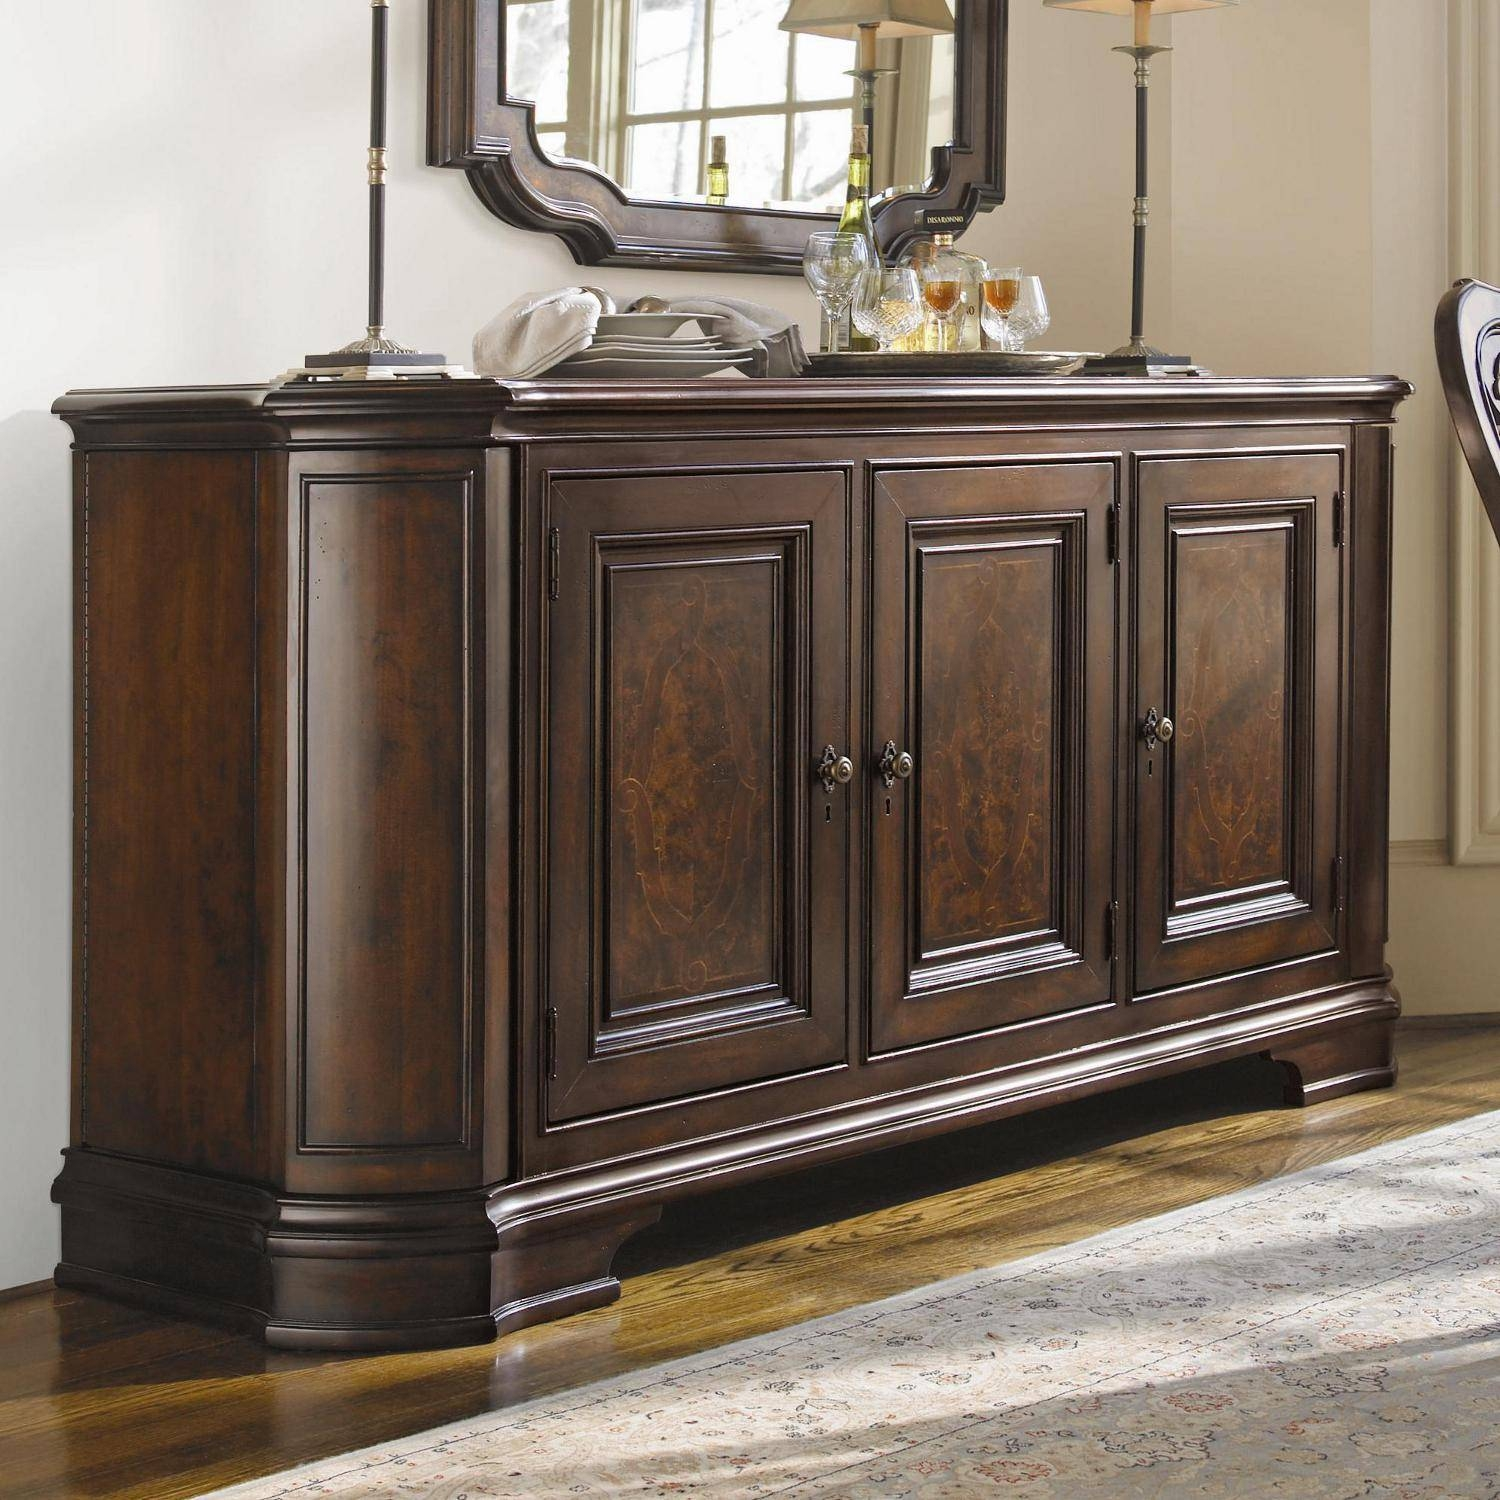 Inspirational Dining Room Sideboards And Buffets – Bjdgjy With Regard To Dining Room Sideboards And Buffets (View 2 of 15)